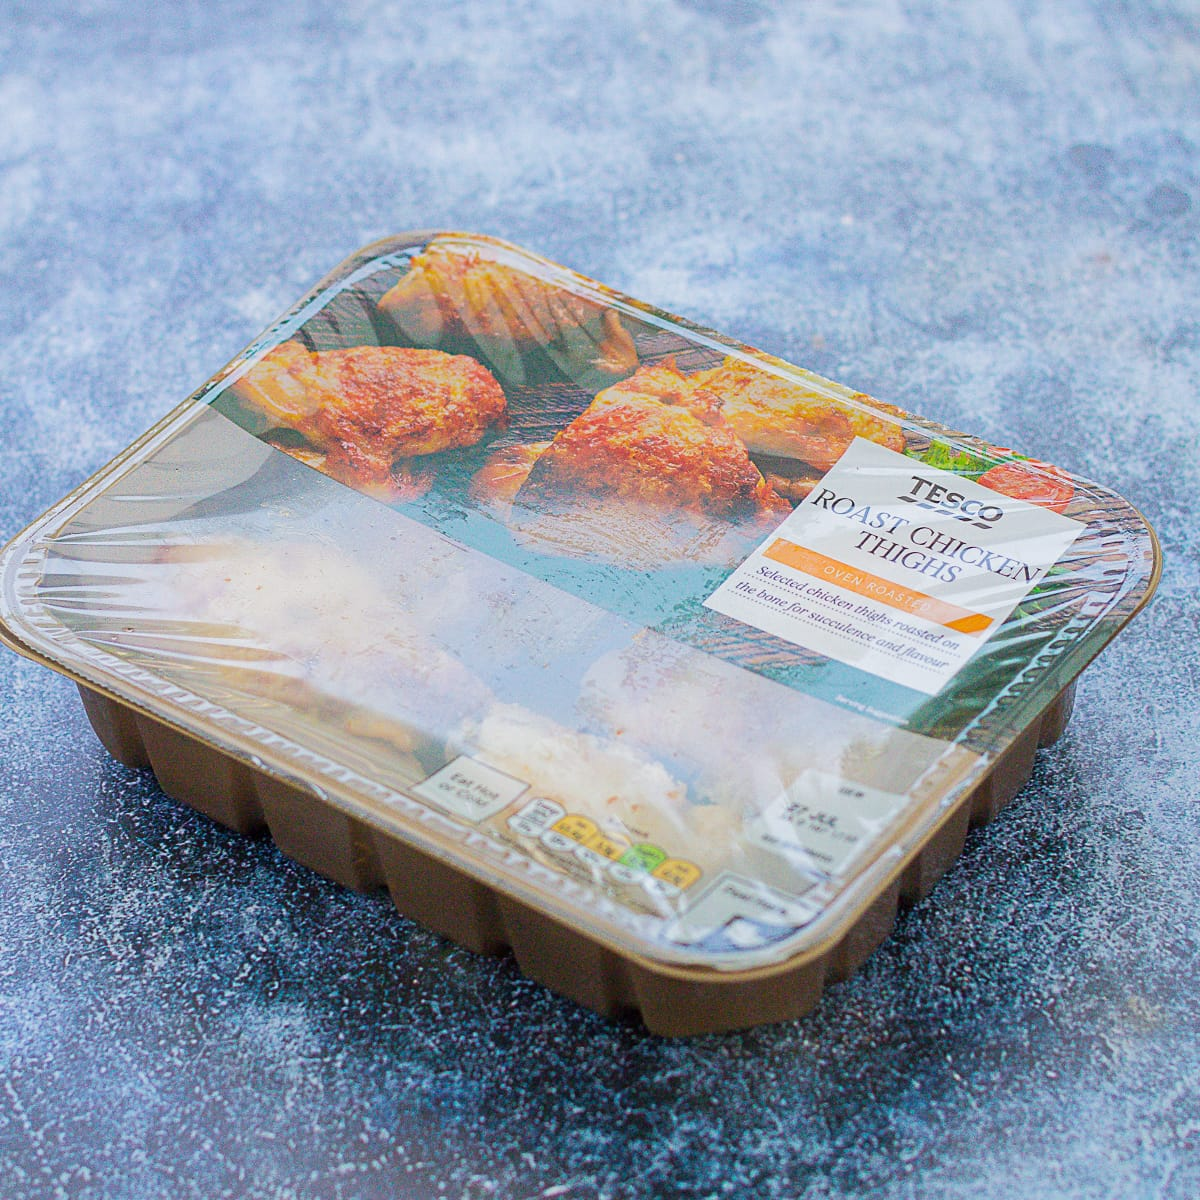 Pack of 4 ready cooked chicken thighs from the supermarket